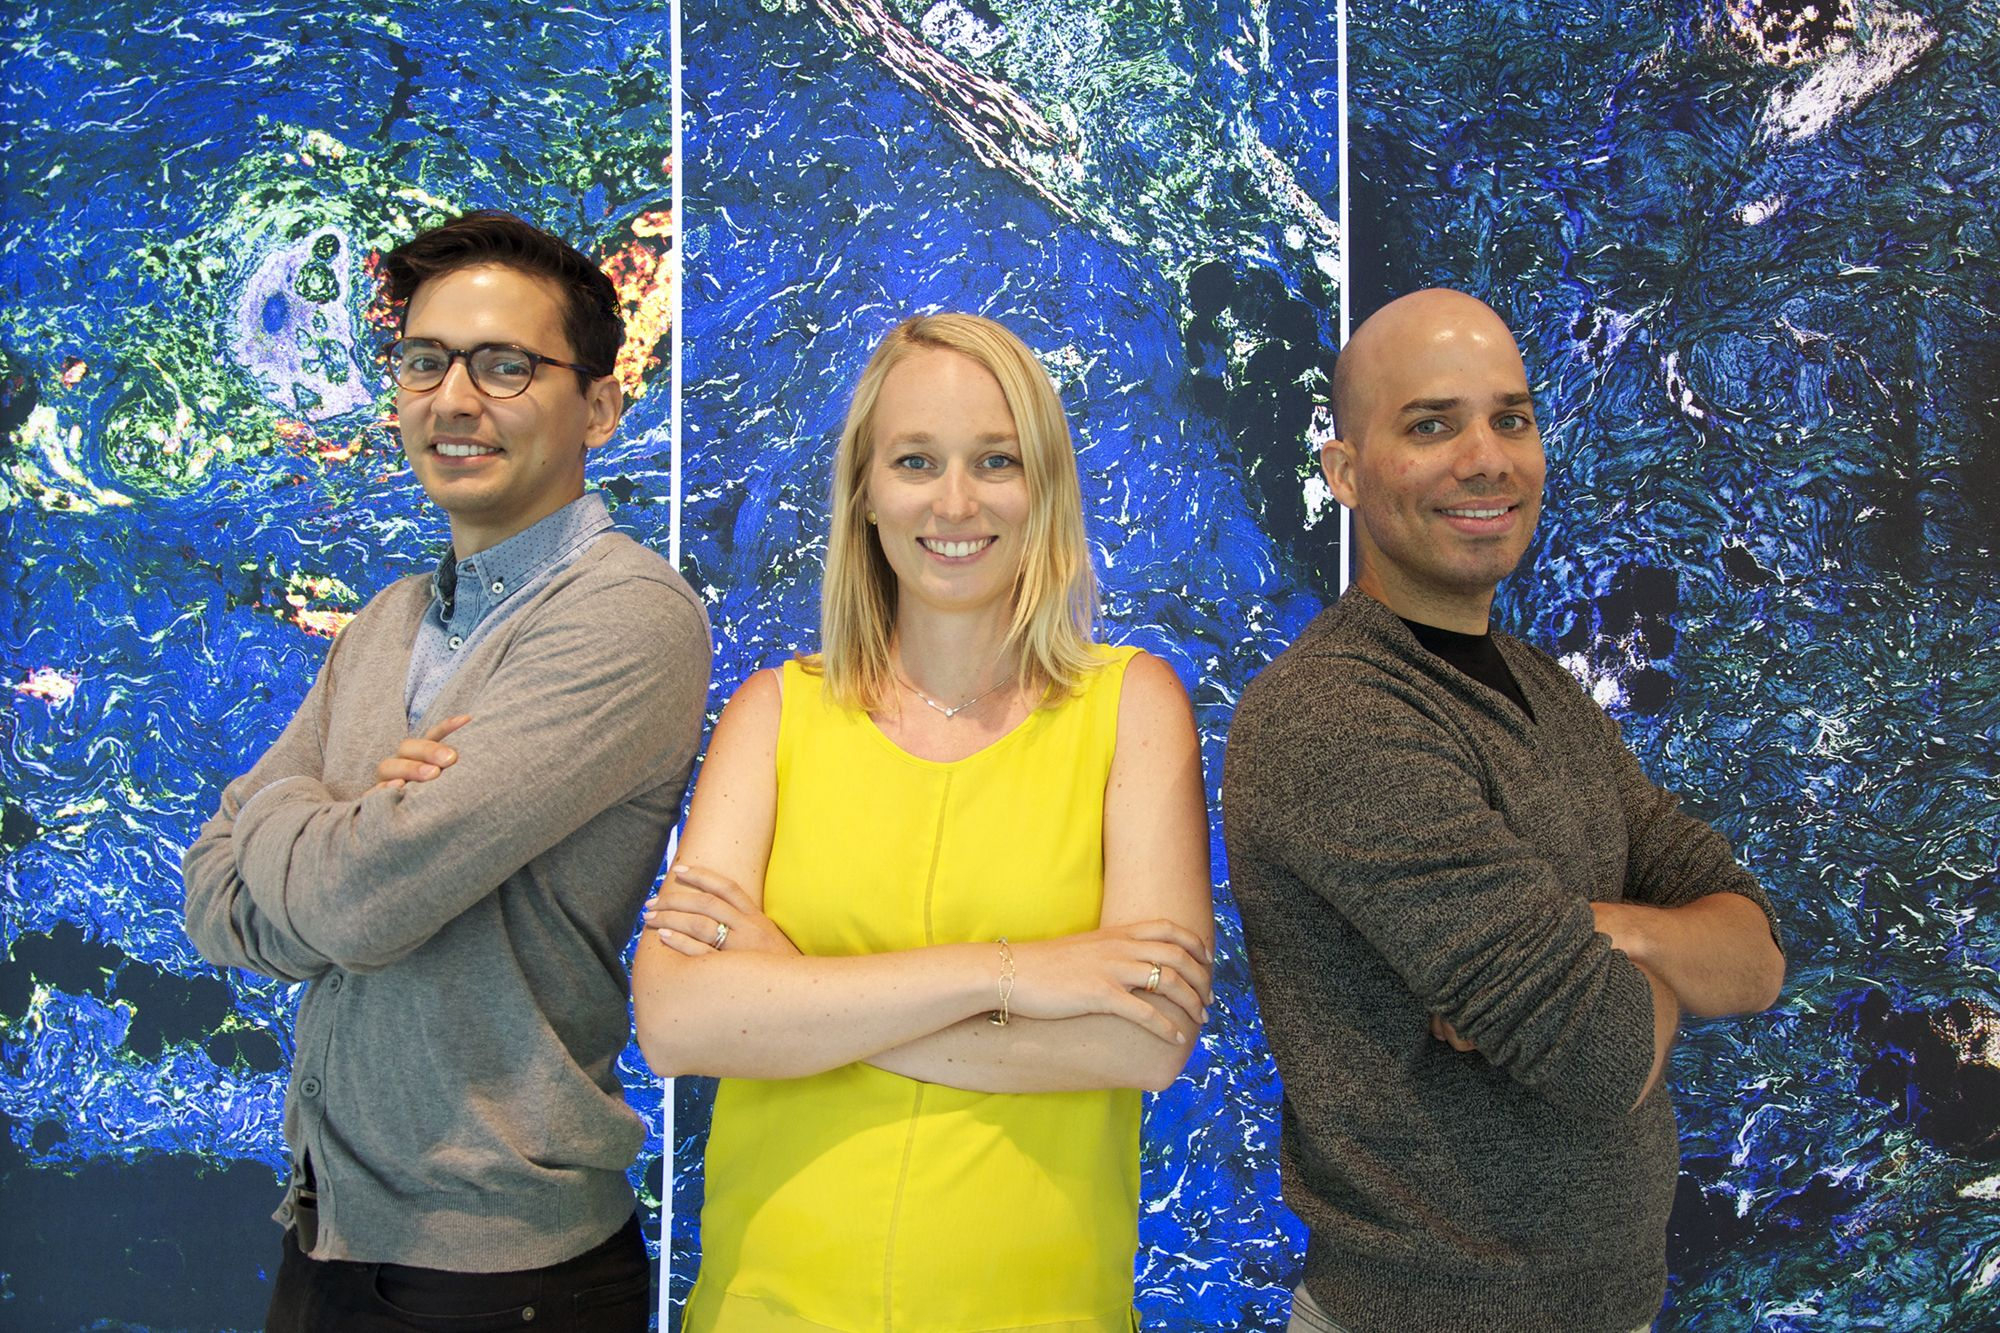 Department of Biology welcomes three new faculty members